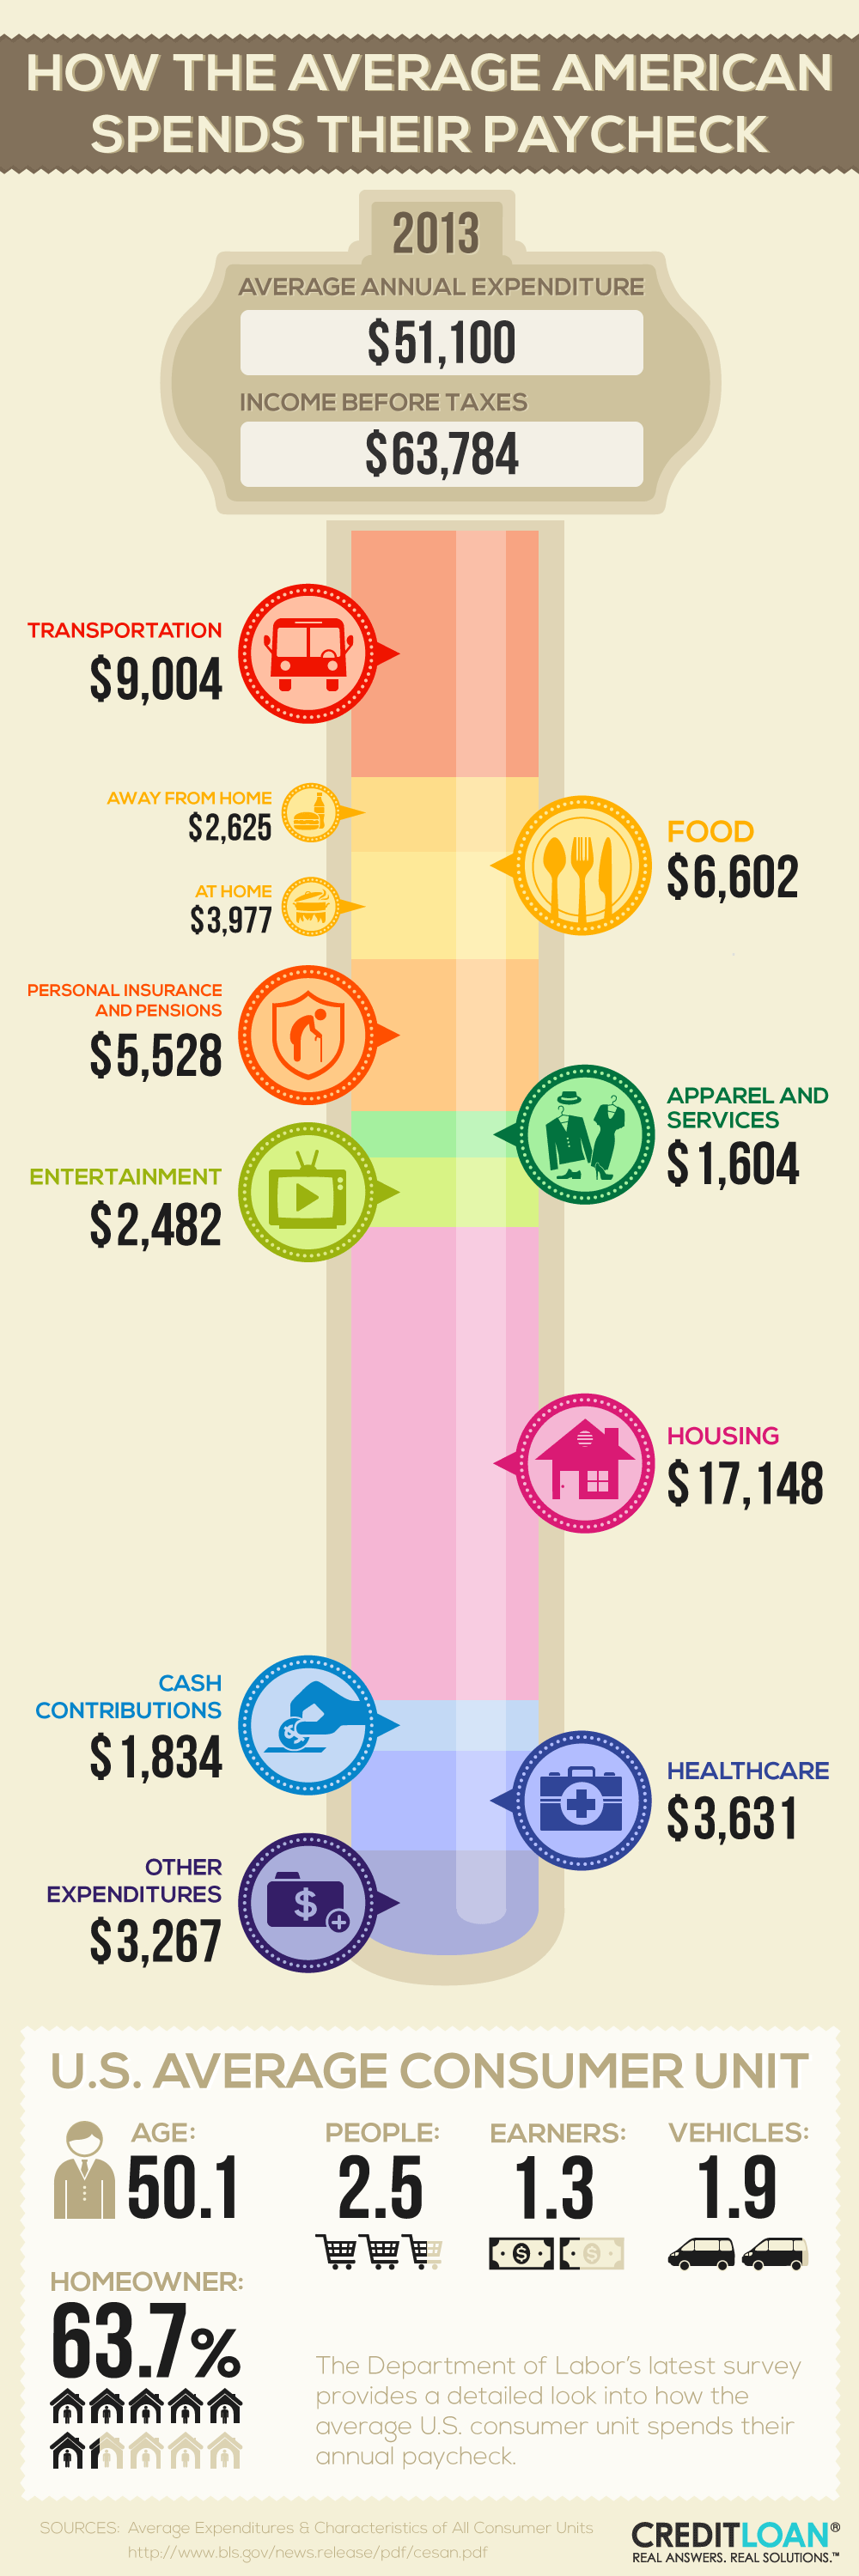 How The Average U.S. Consumer Spends Their Paycheck - CreditLoan.com®